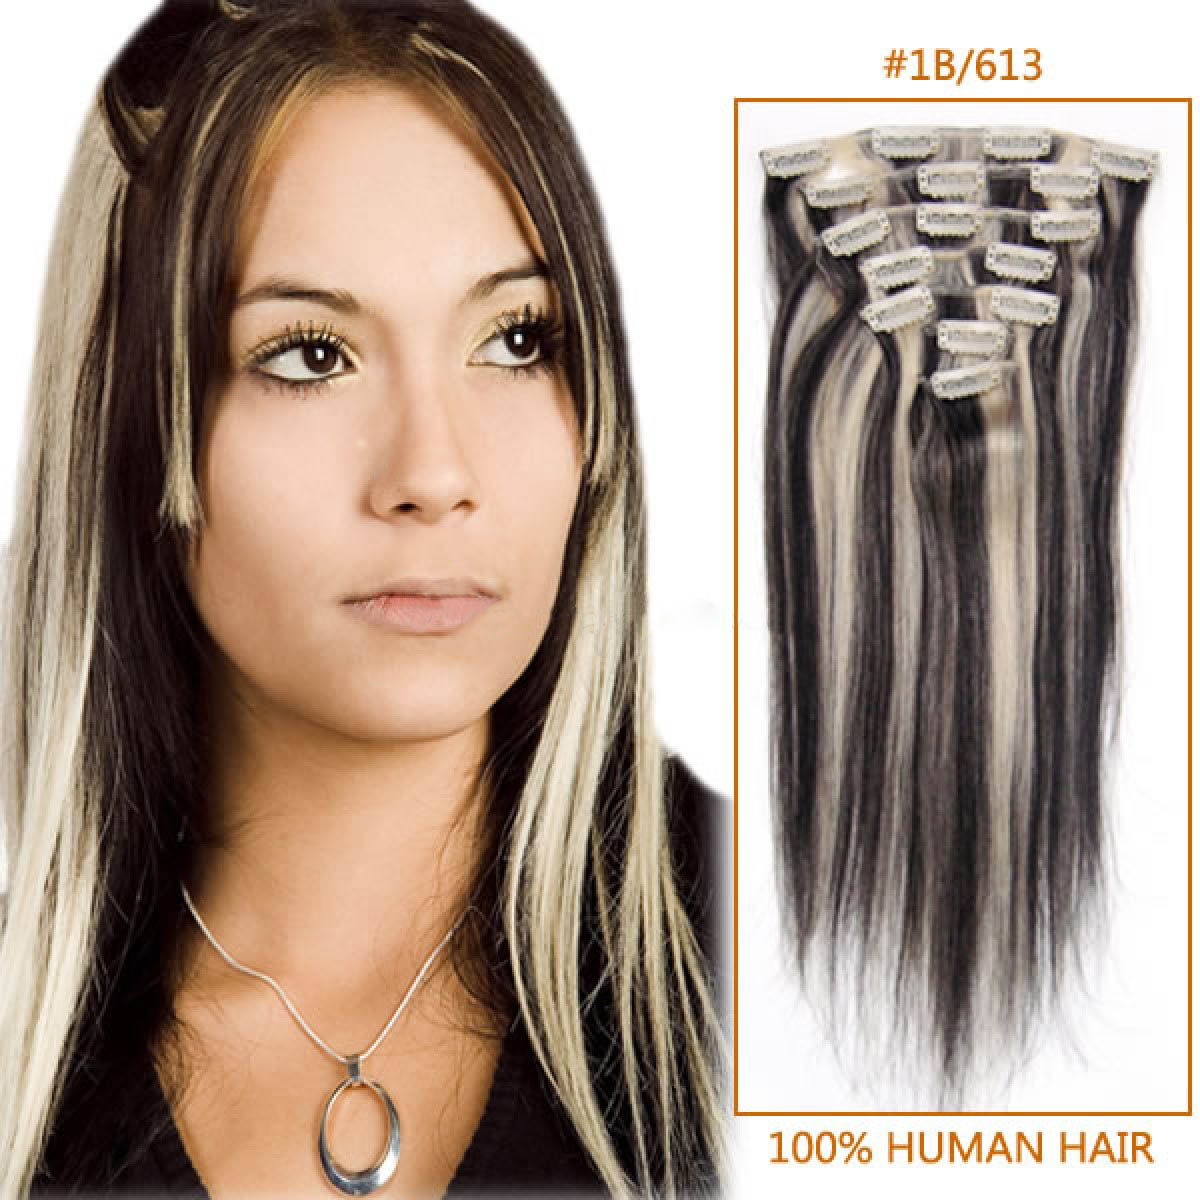 Inch 1b613 clip in human hair extensions 8pcs 24 inch 1b613 clip in human hair extensions 8pcs pmusecretfo Image collections